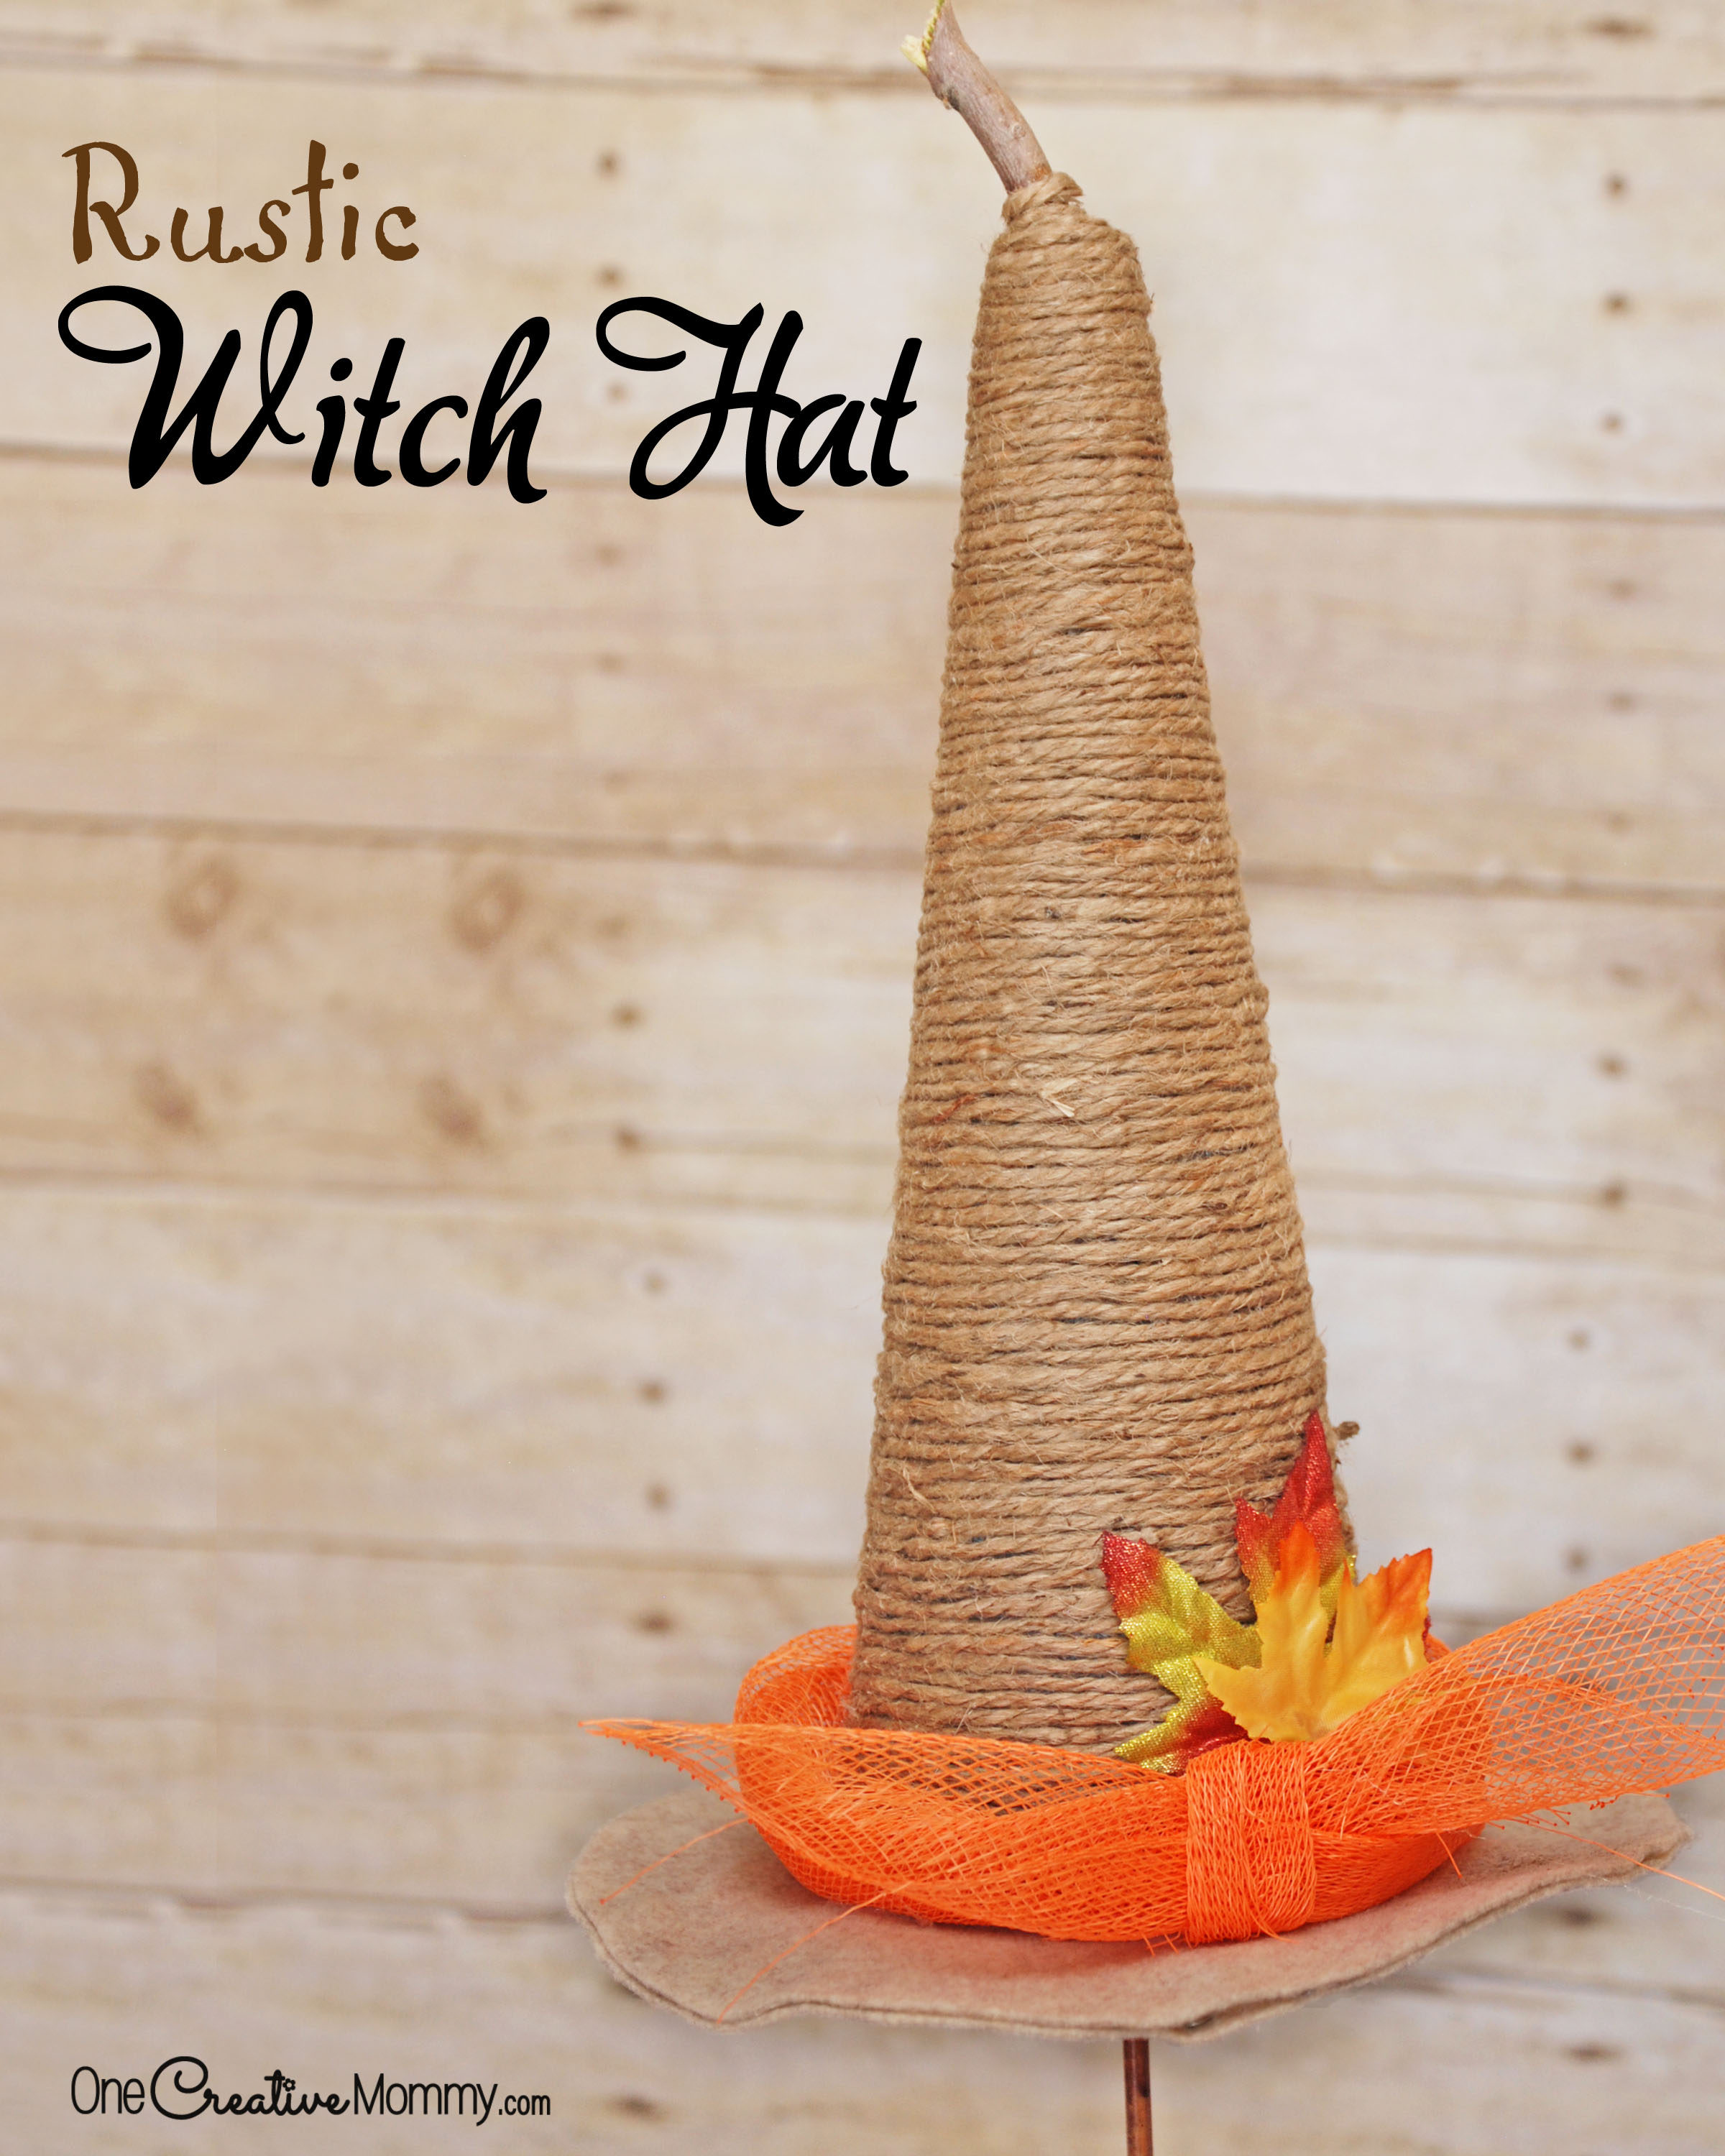 Rustic Witch Hat Tutorial